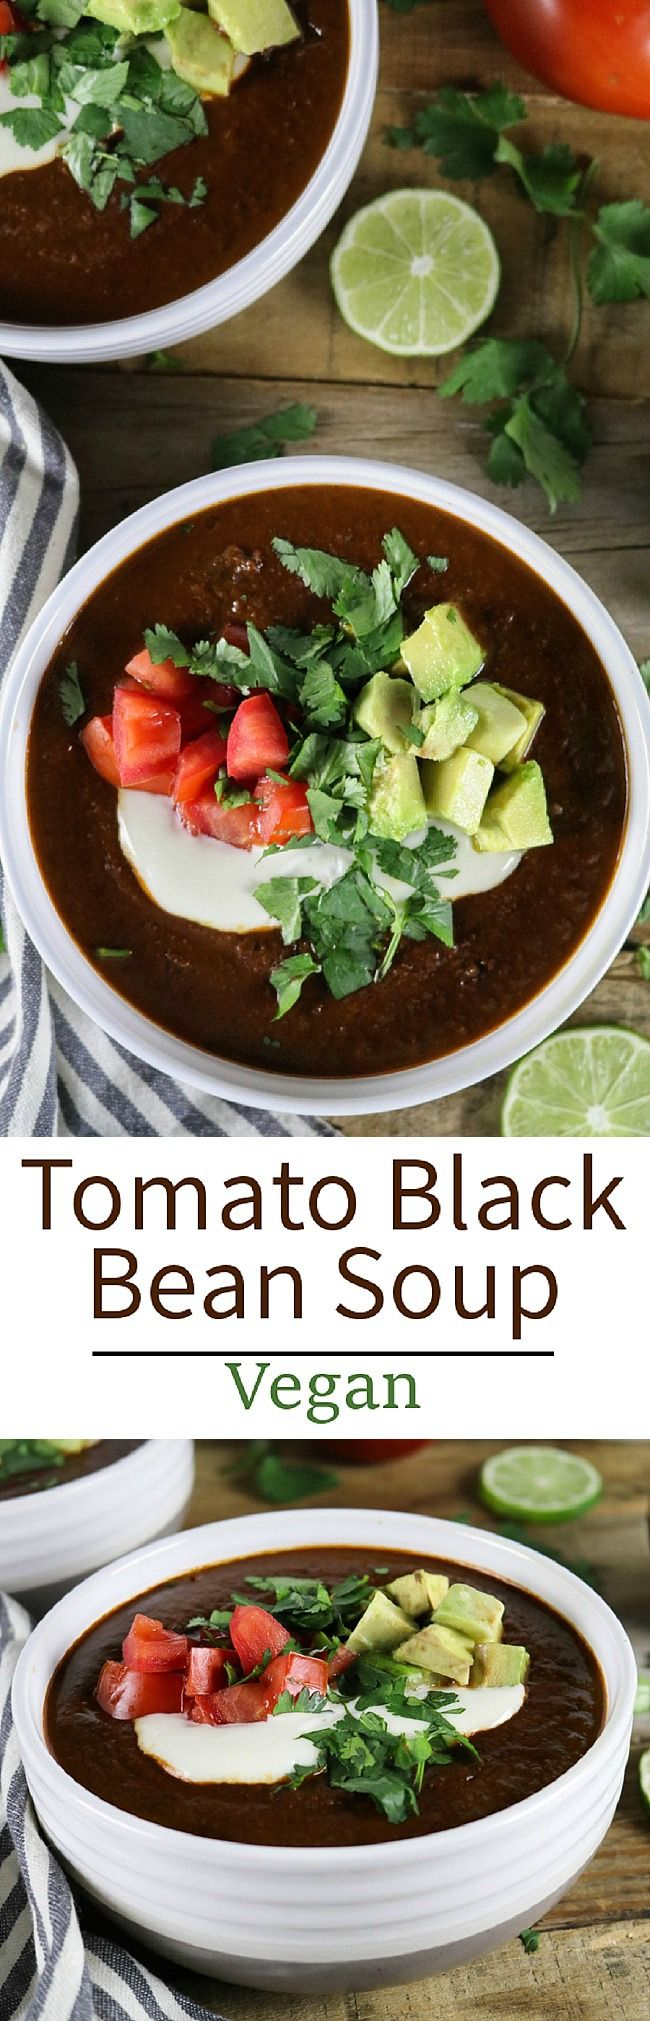 This Tomato Black Bean Soup is from Jason Wyrick's new book Vegan Mexico - it's hearty, healthy and bursting with authentic Mexican flavor! Vegan & gluten-free.